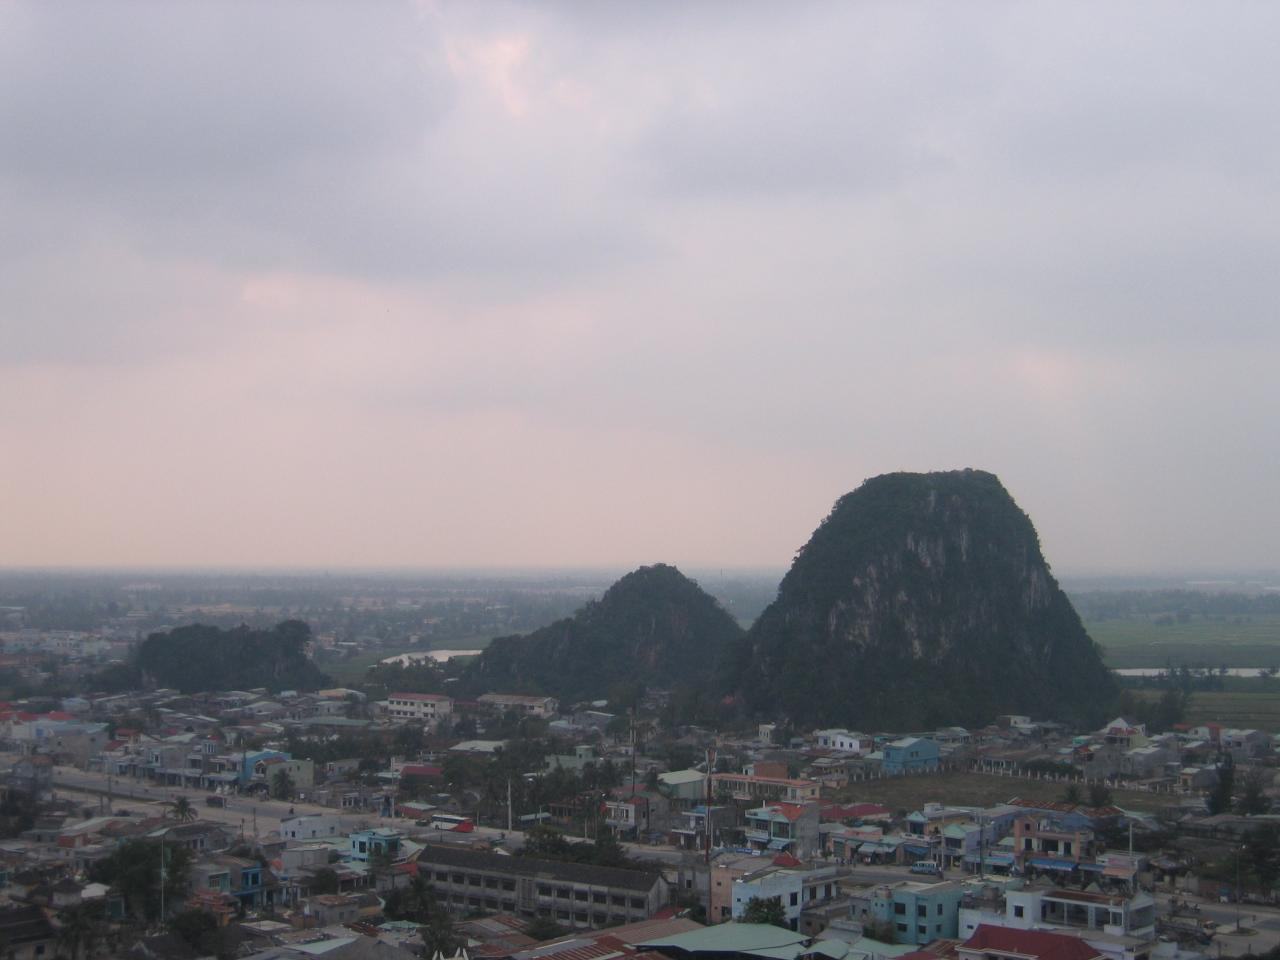 Da Nang_Marble Mountain 4 (Wood Mountain on left_double hump Metal Mountain on right)